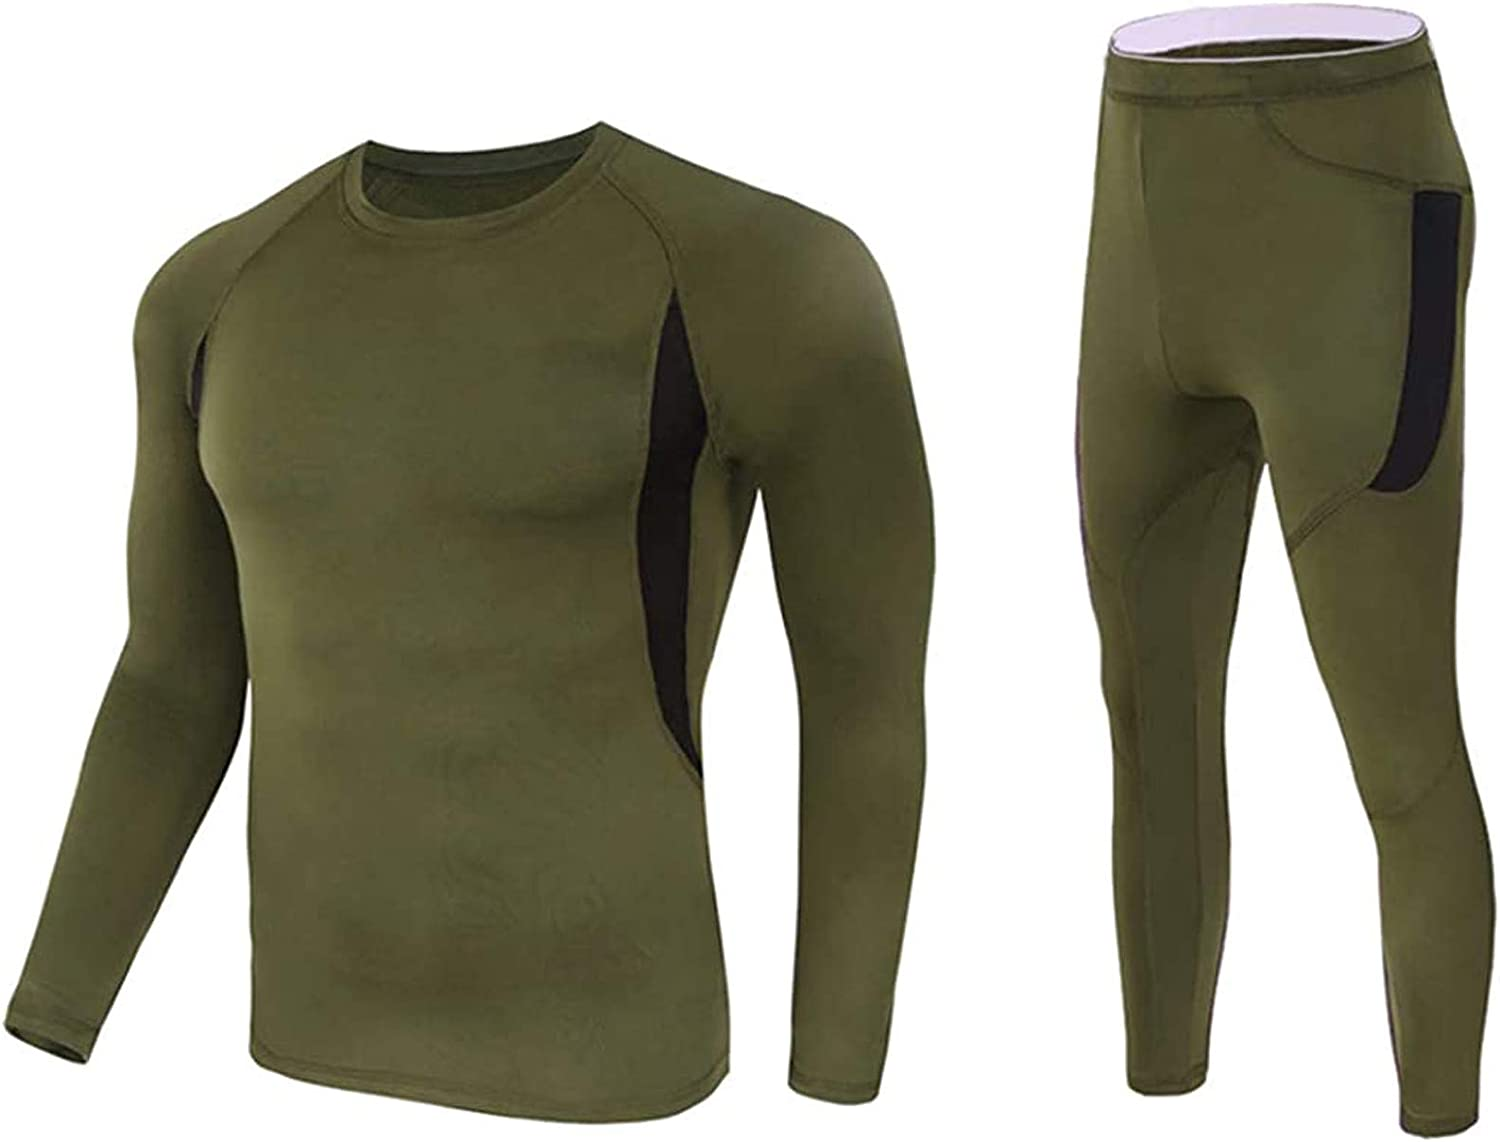 Men's Thermal Underwear Suit Breathable Underwear Fitness Skiing Running Hiking Fun Suit, Sexy-Lingerie Set